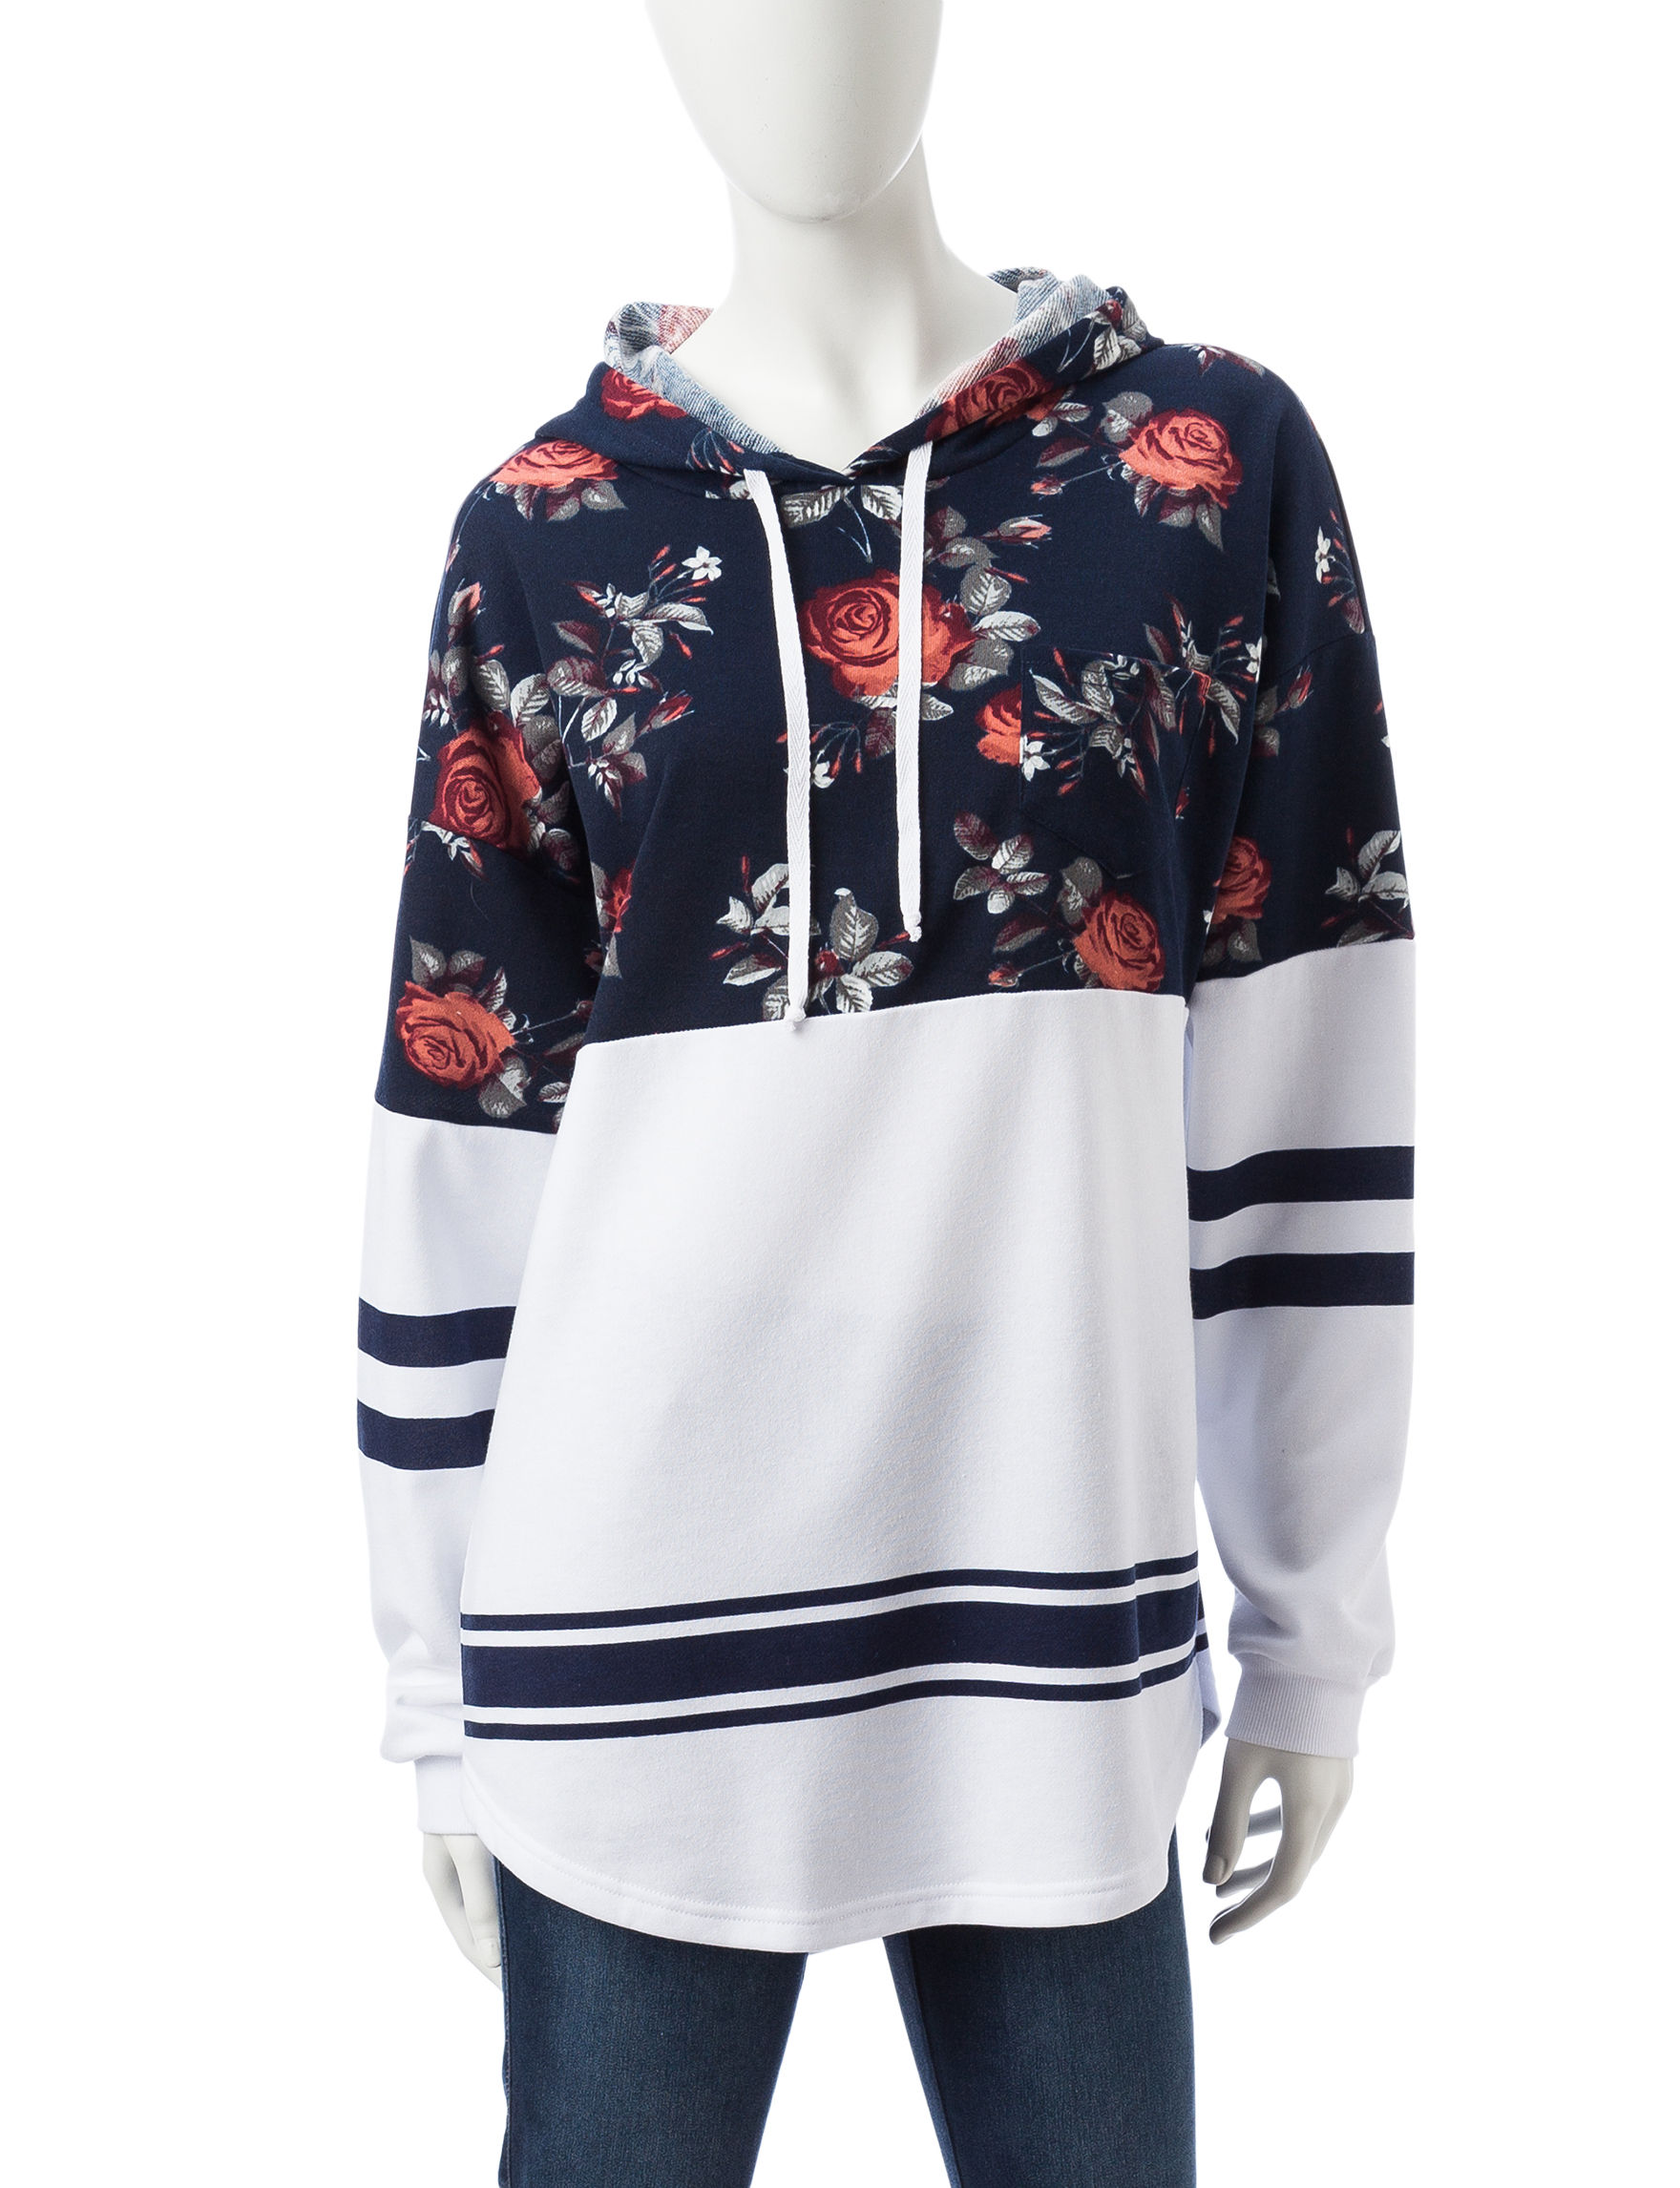 Justify Navy / White Pull-overs